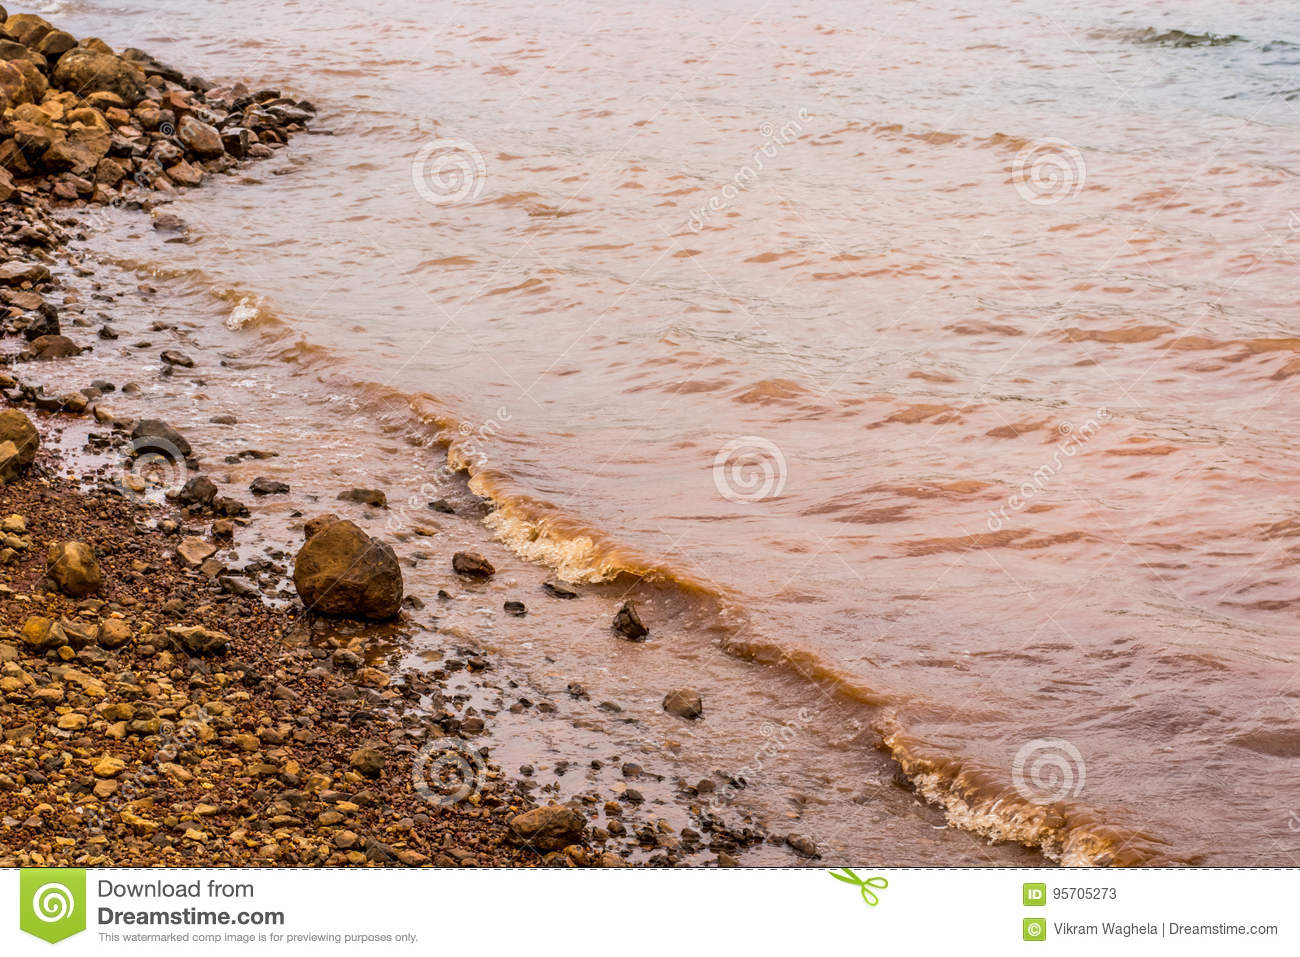 Muddy Water Waves von Panshet